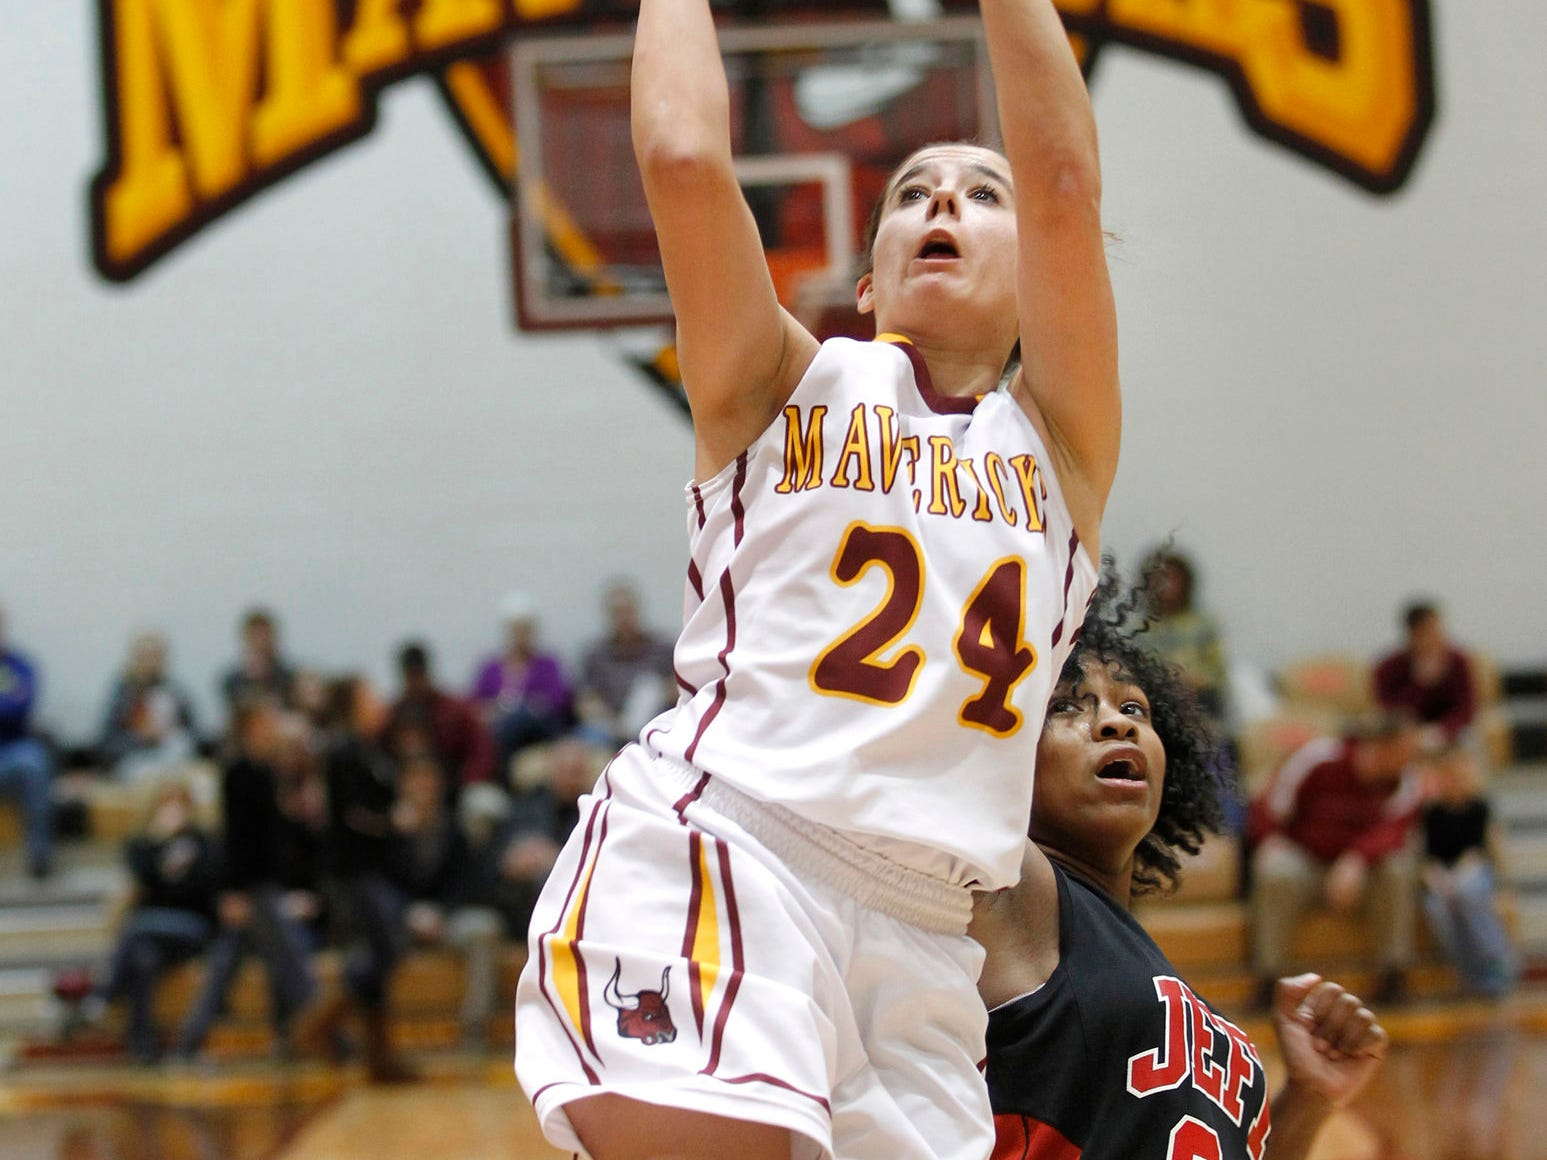 McCutcheon's Kerstyn Lowery gets past Alexia Randolph of Lafayette Jeff for a drive to the basket in girls sectional basketball action Friday, February 13, 2015, at McCutcheon High School. McCutcheon defeated Lafayette Jeff 43-33.